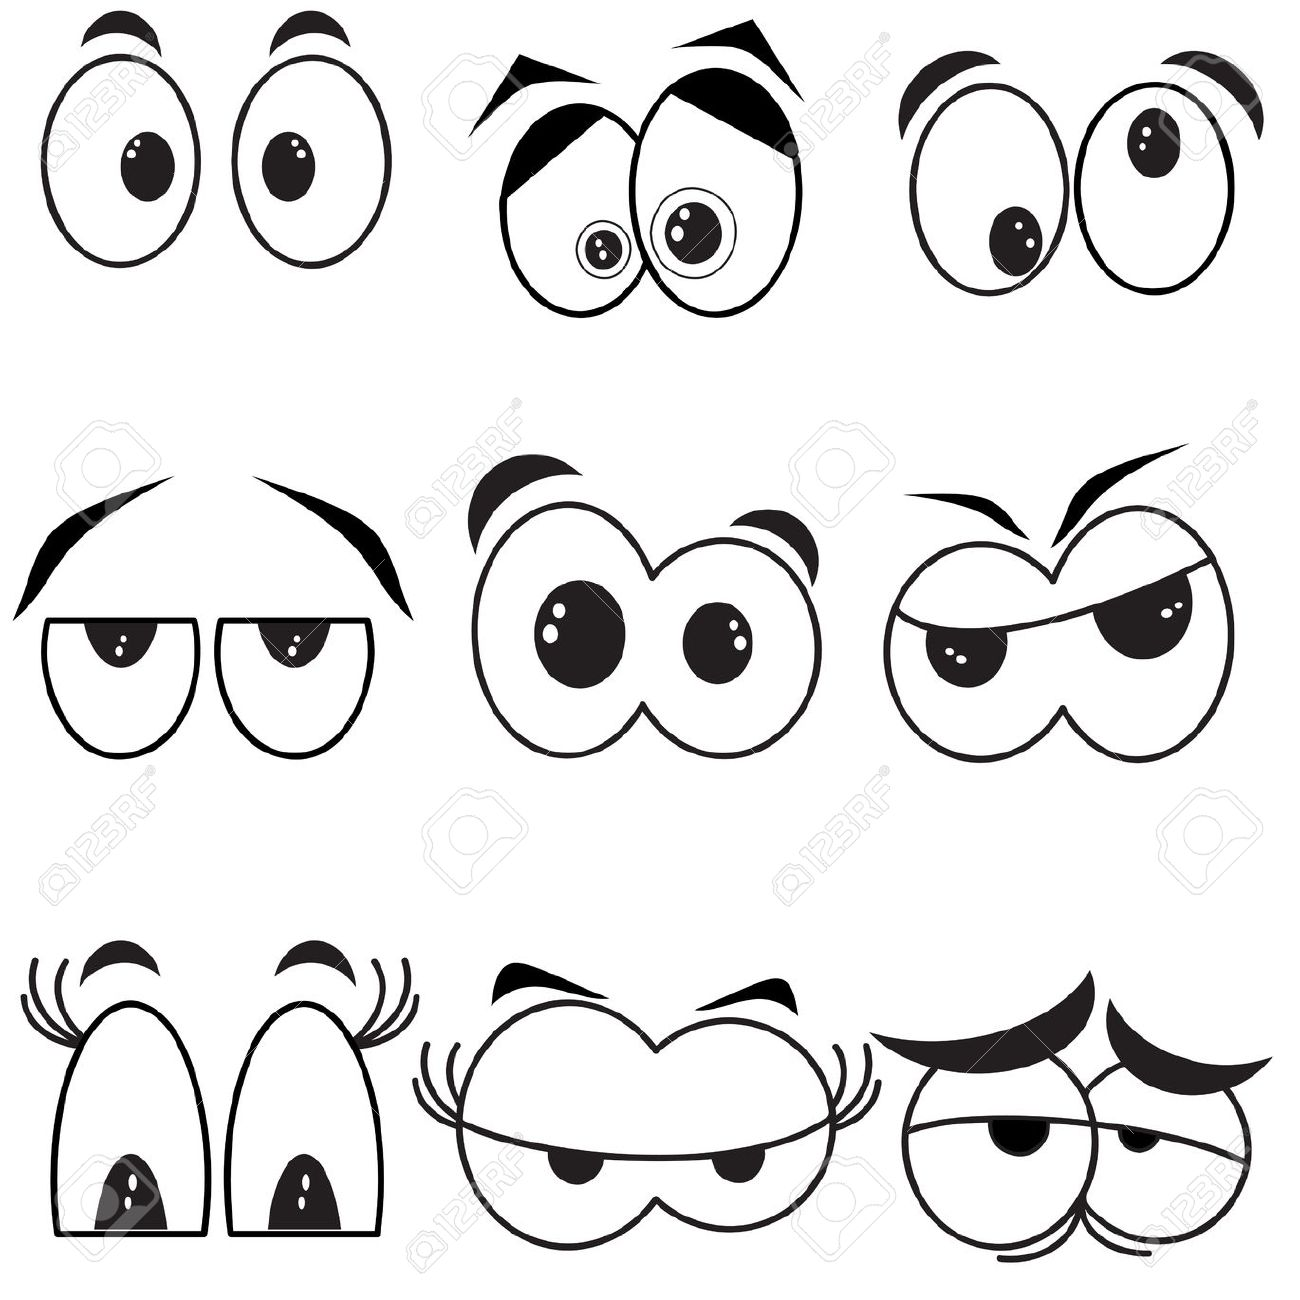 34,755 Round Eyes Cliparts, Stock Vector And Royalty Free Round.